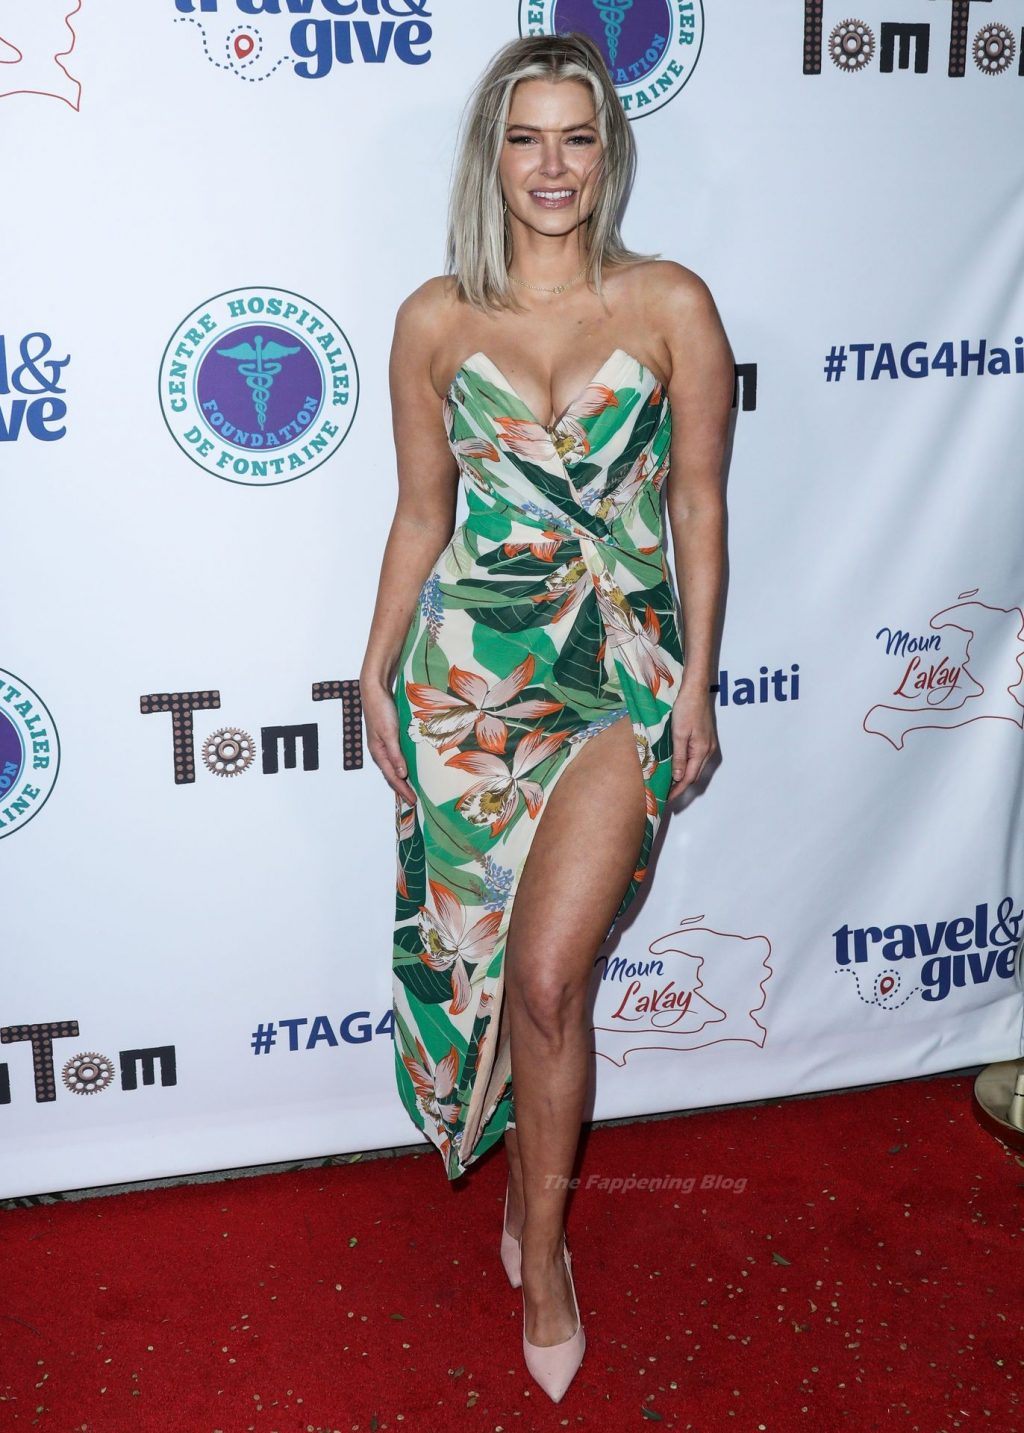 Ariana Madix Shows Off Her Cleavage at Travel and GIVE's Event (35 Photos)